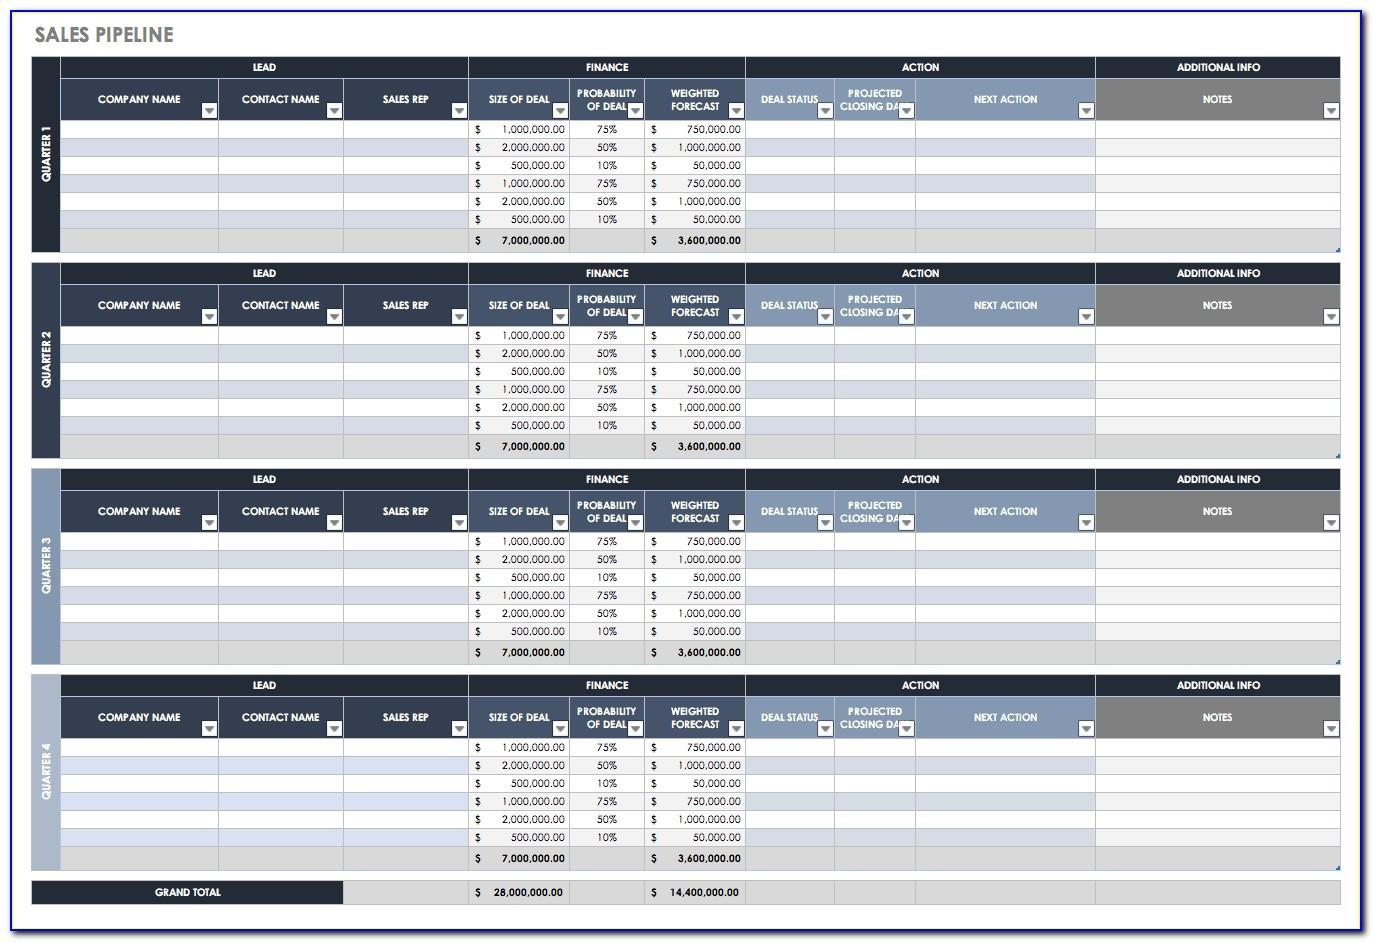 Excel Templates For Sales Pipeline